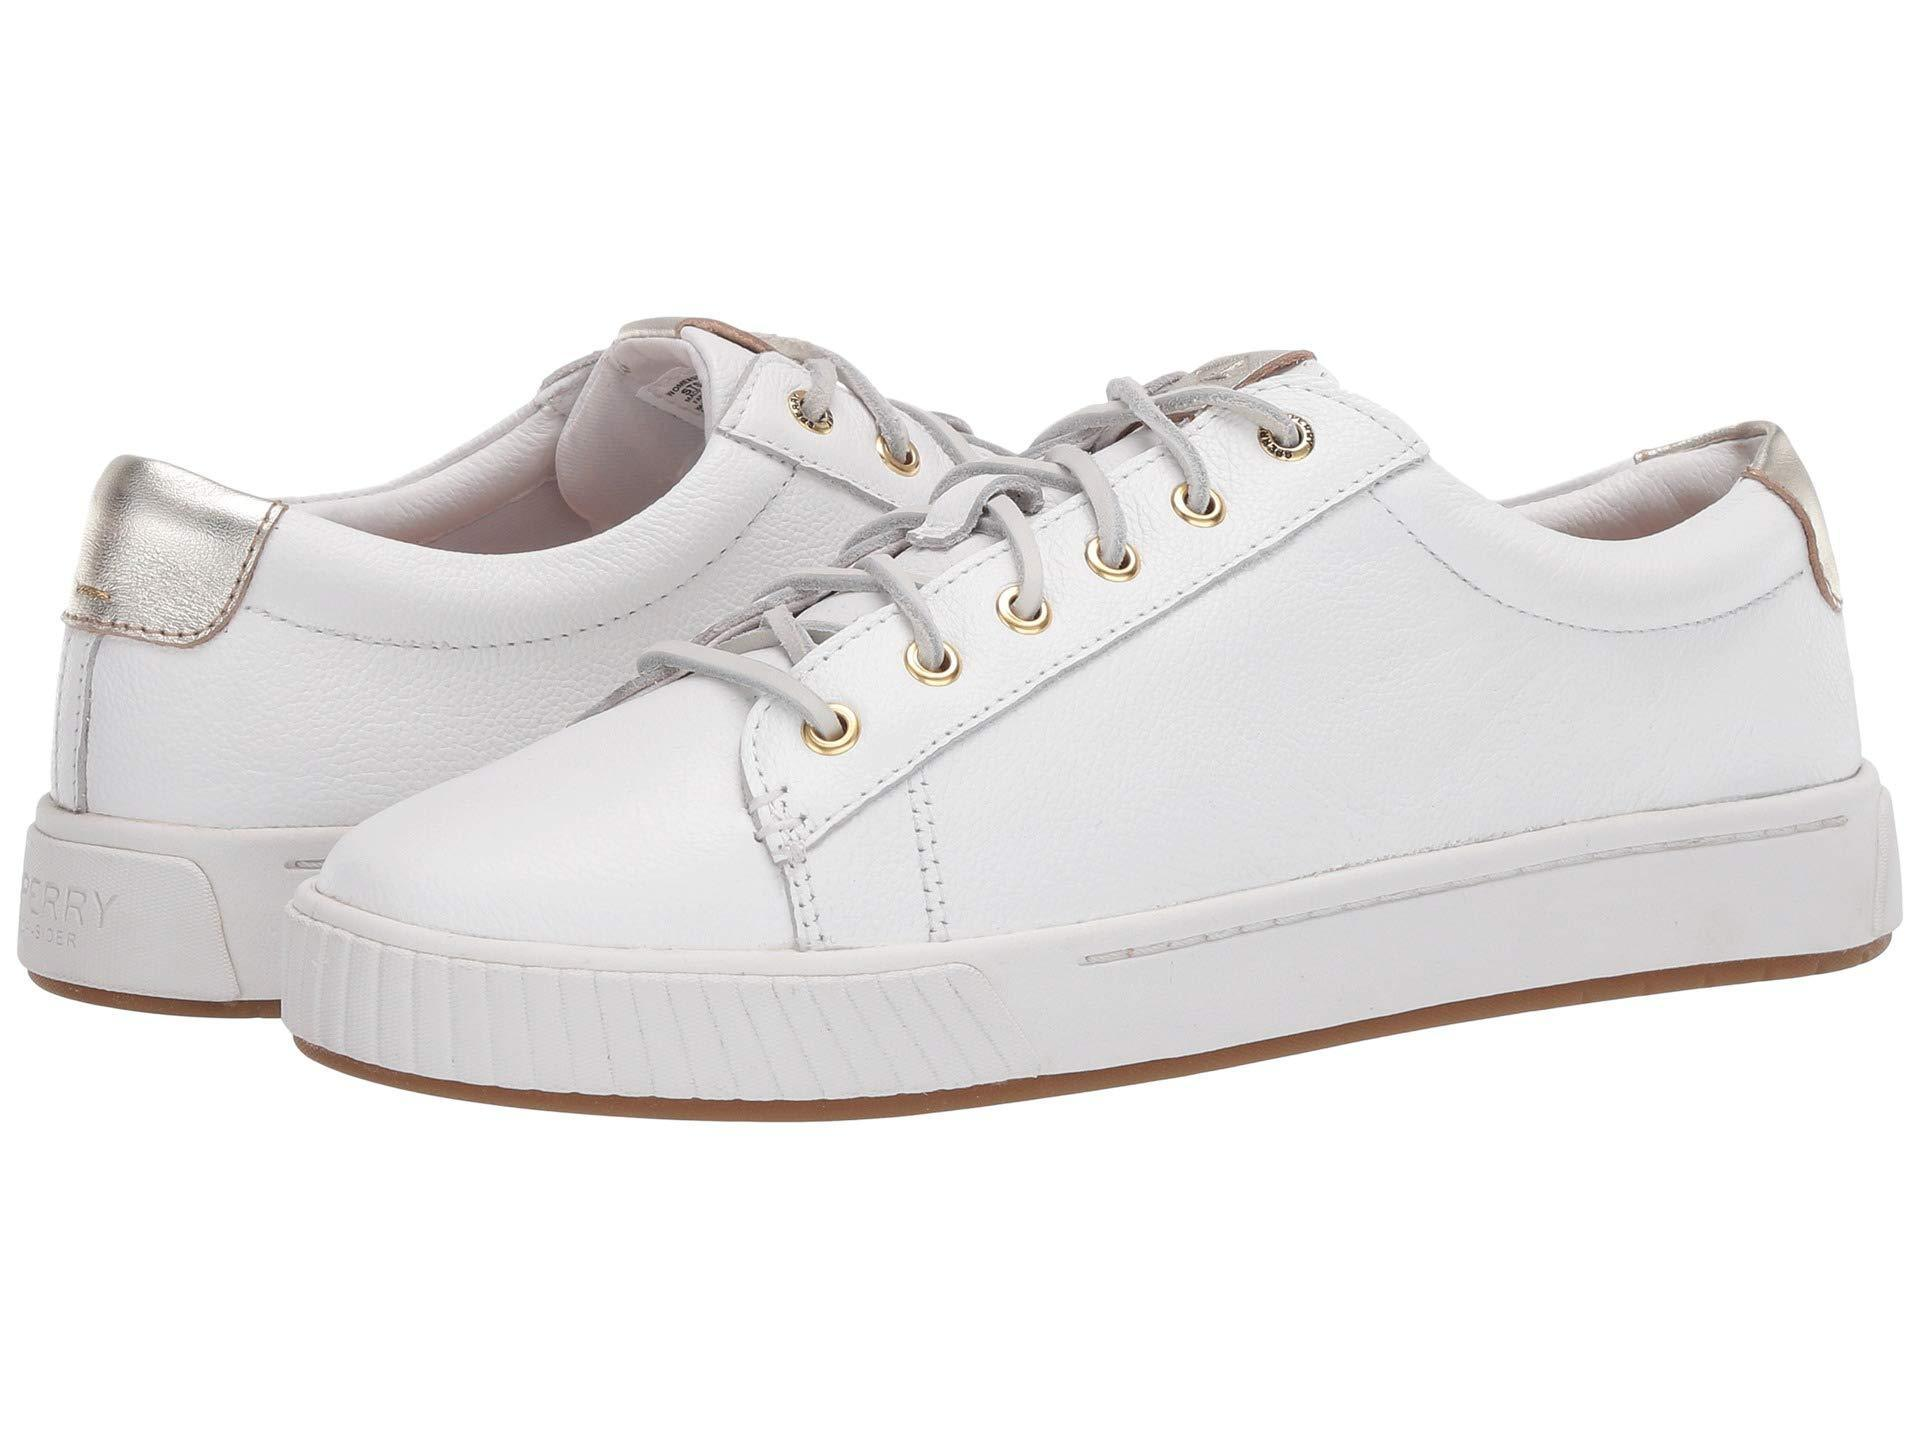 shop sperry top sider shoes